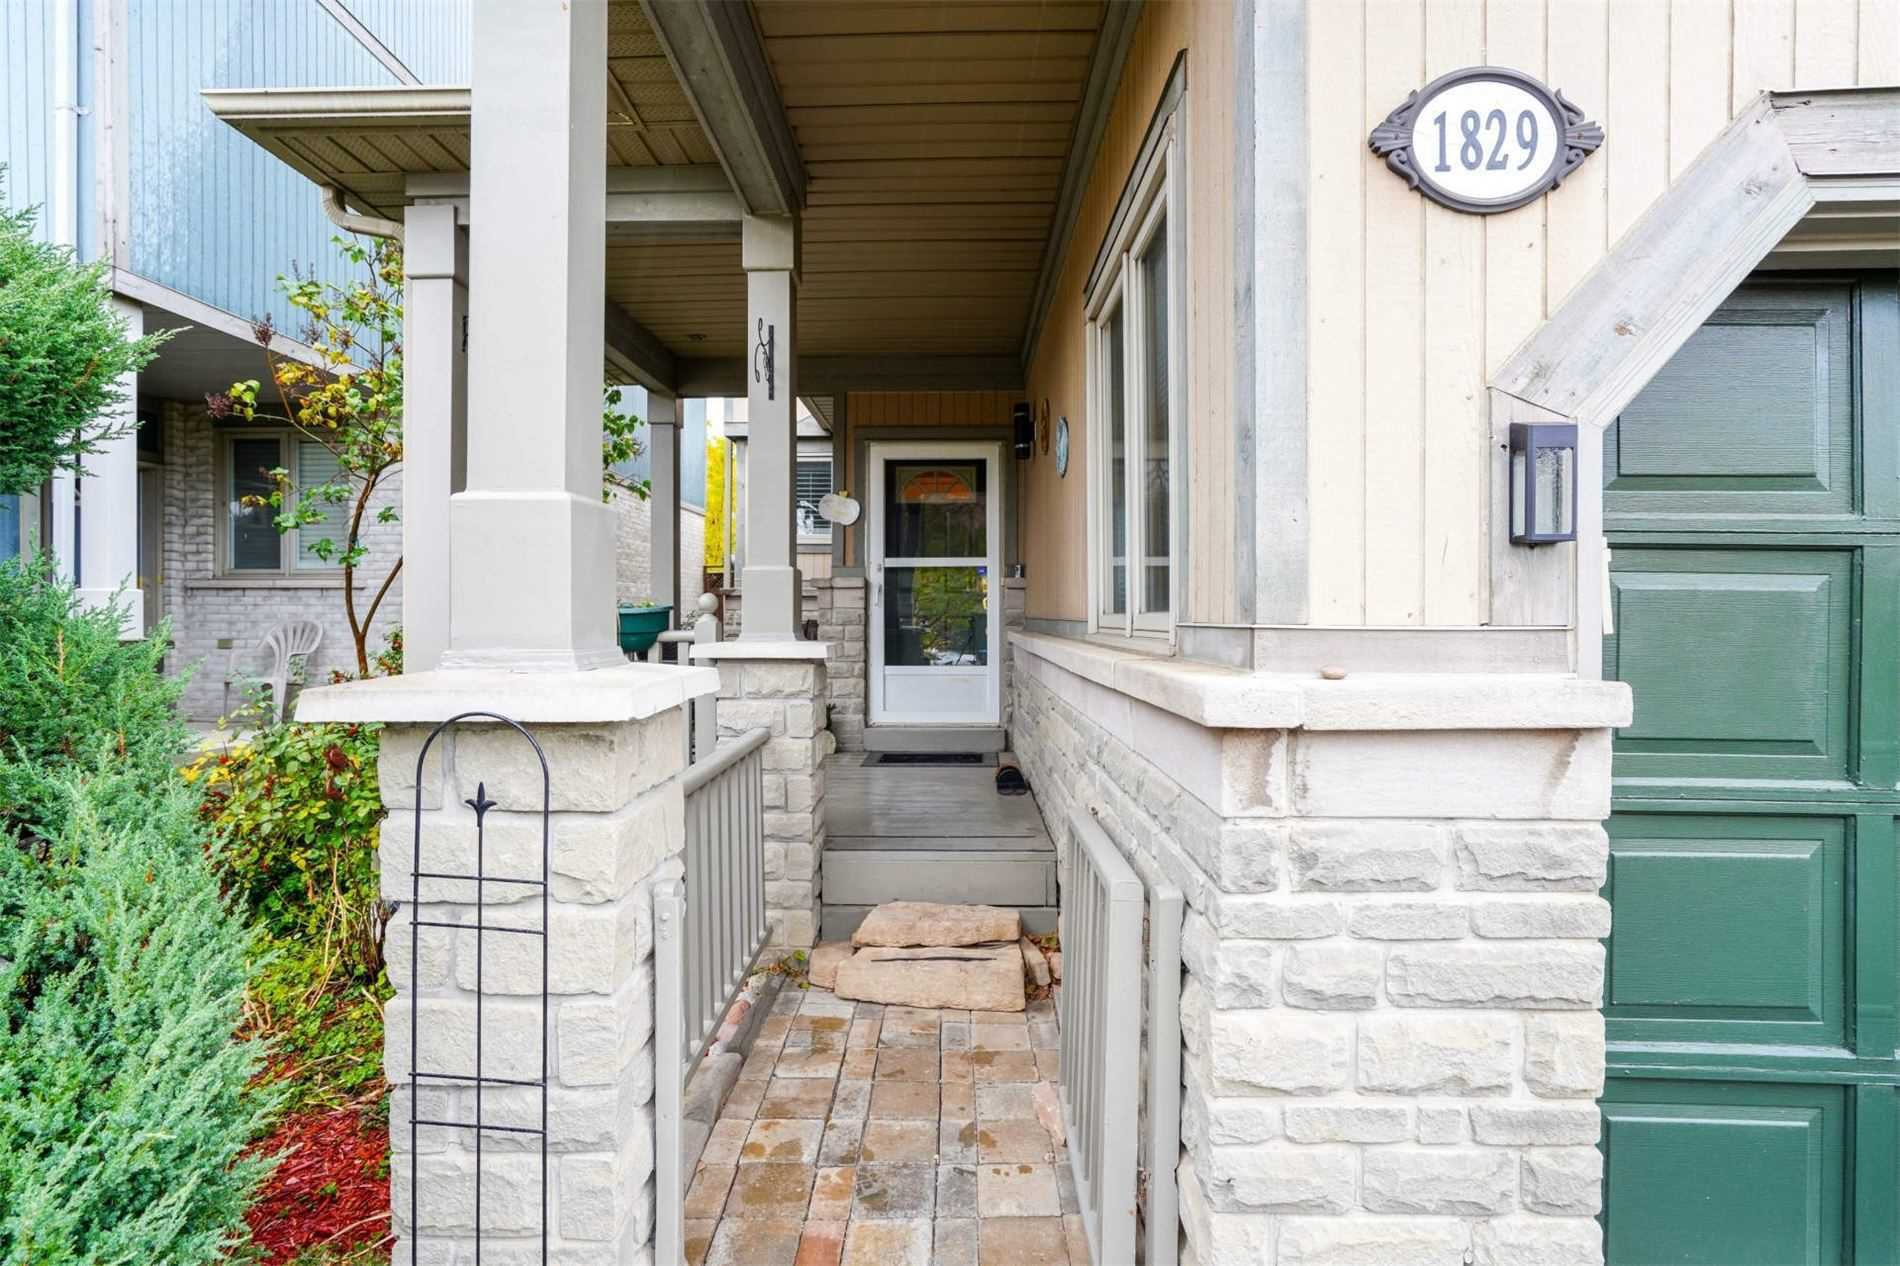 Main Photo: 1829 Stevington Crescent in Mississauga: Meadowvale Village House (2-Storey) for lease : MLS®# W4622513